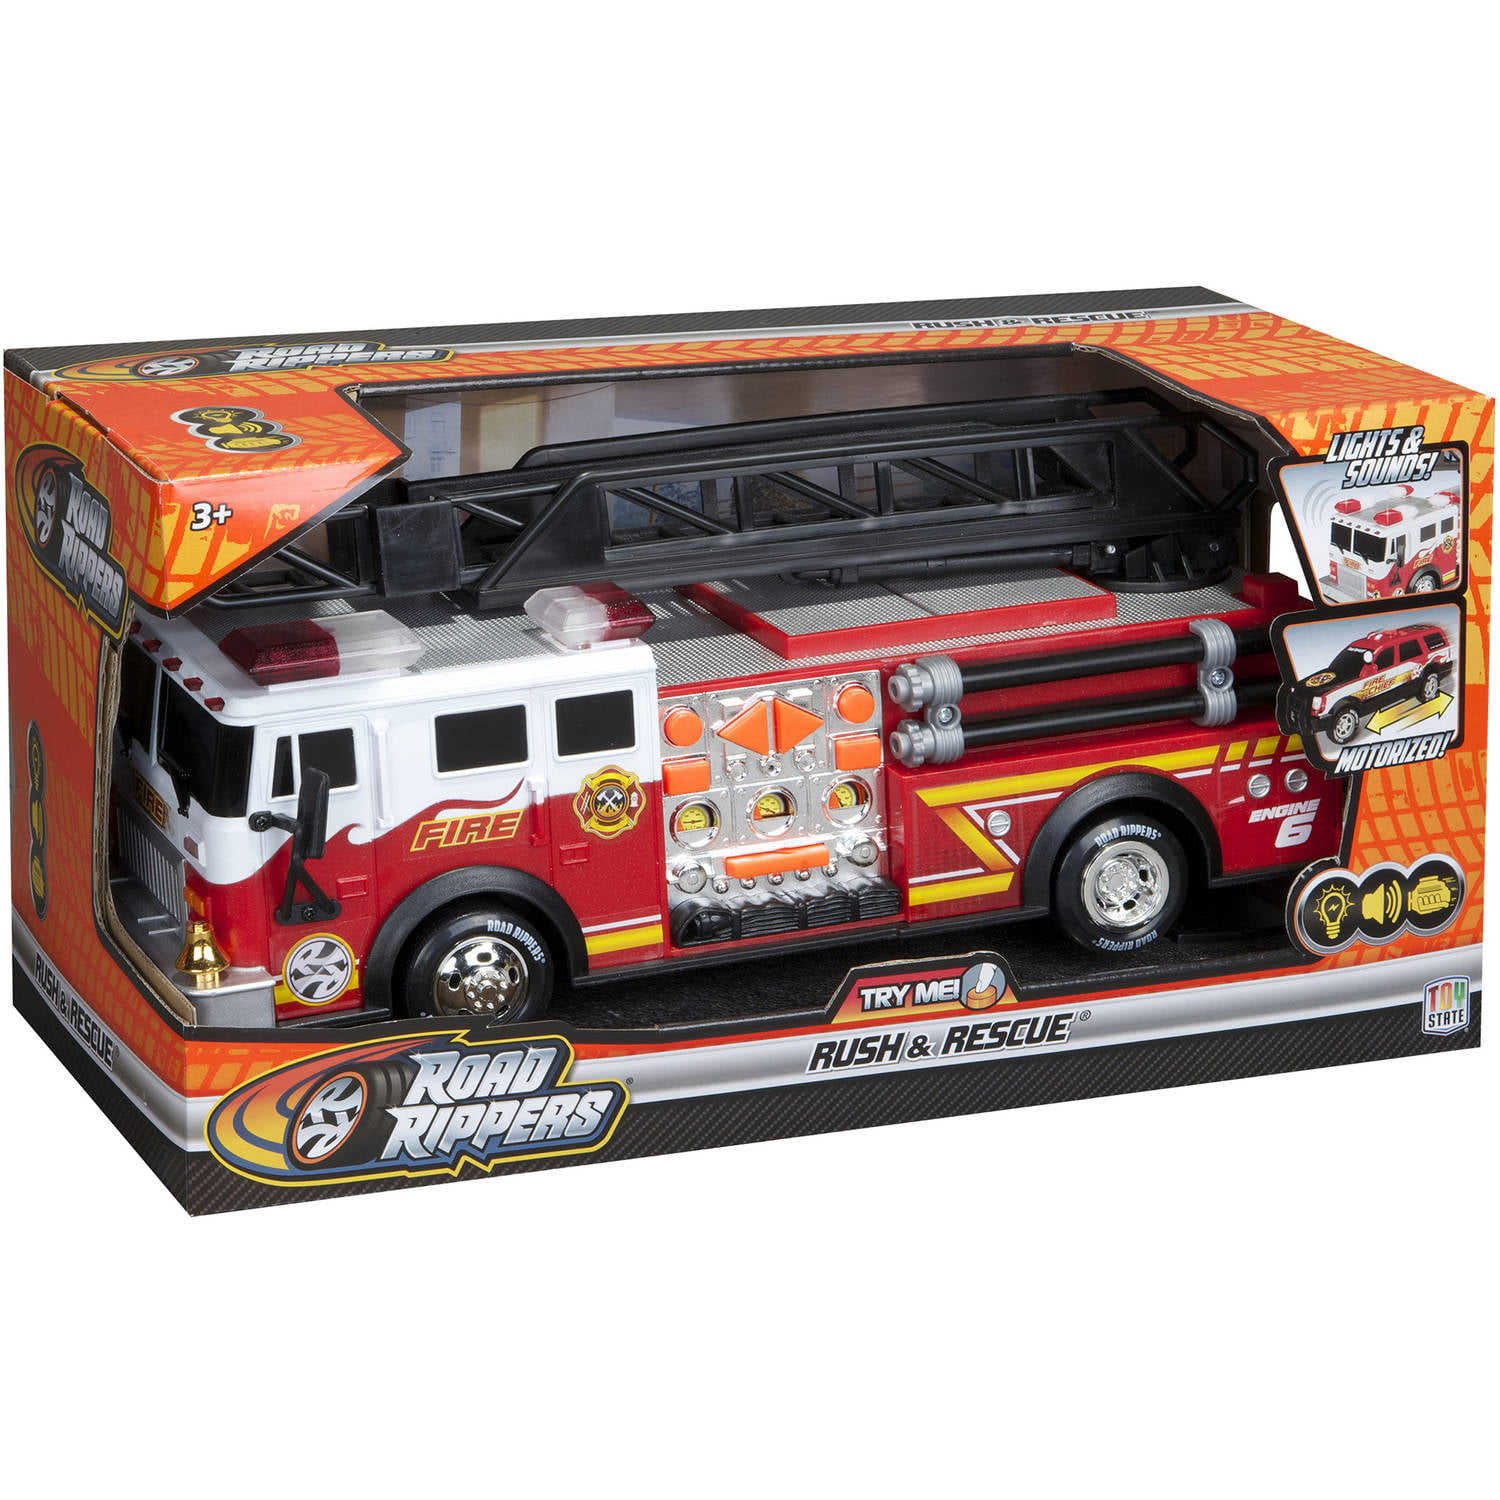 "Road Rippers 14"" Rush and Rescue Hook and Ladder Fire Truck by Toy State International Limited"